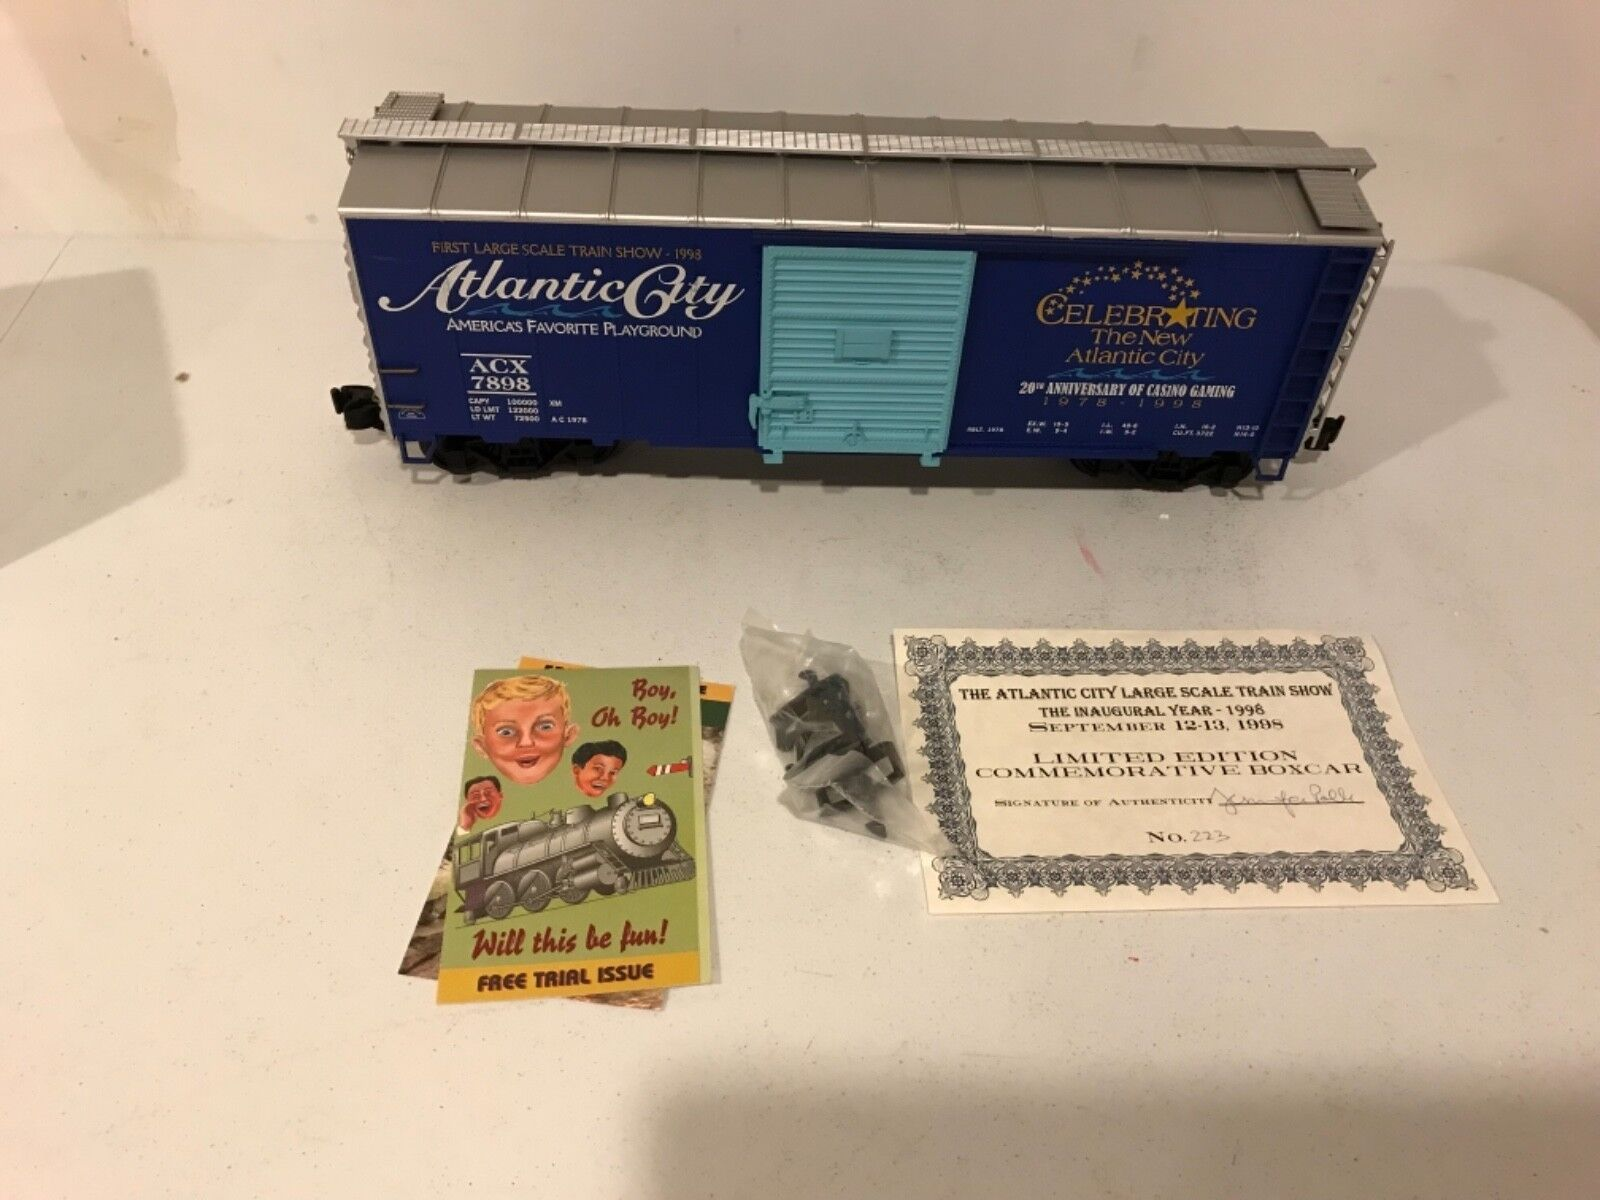 Aristocraft ART-46095 Limited Edition Atlantic City 1998 Train Show Steel Boxcar